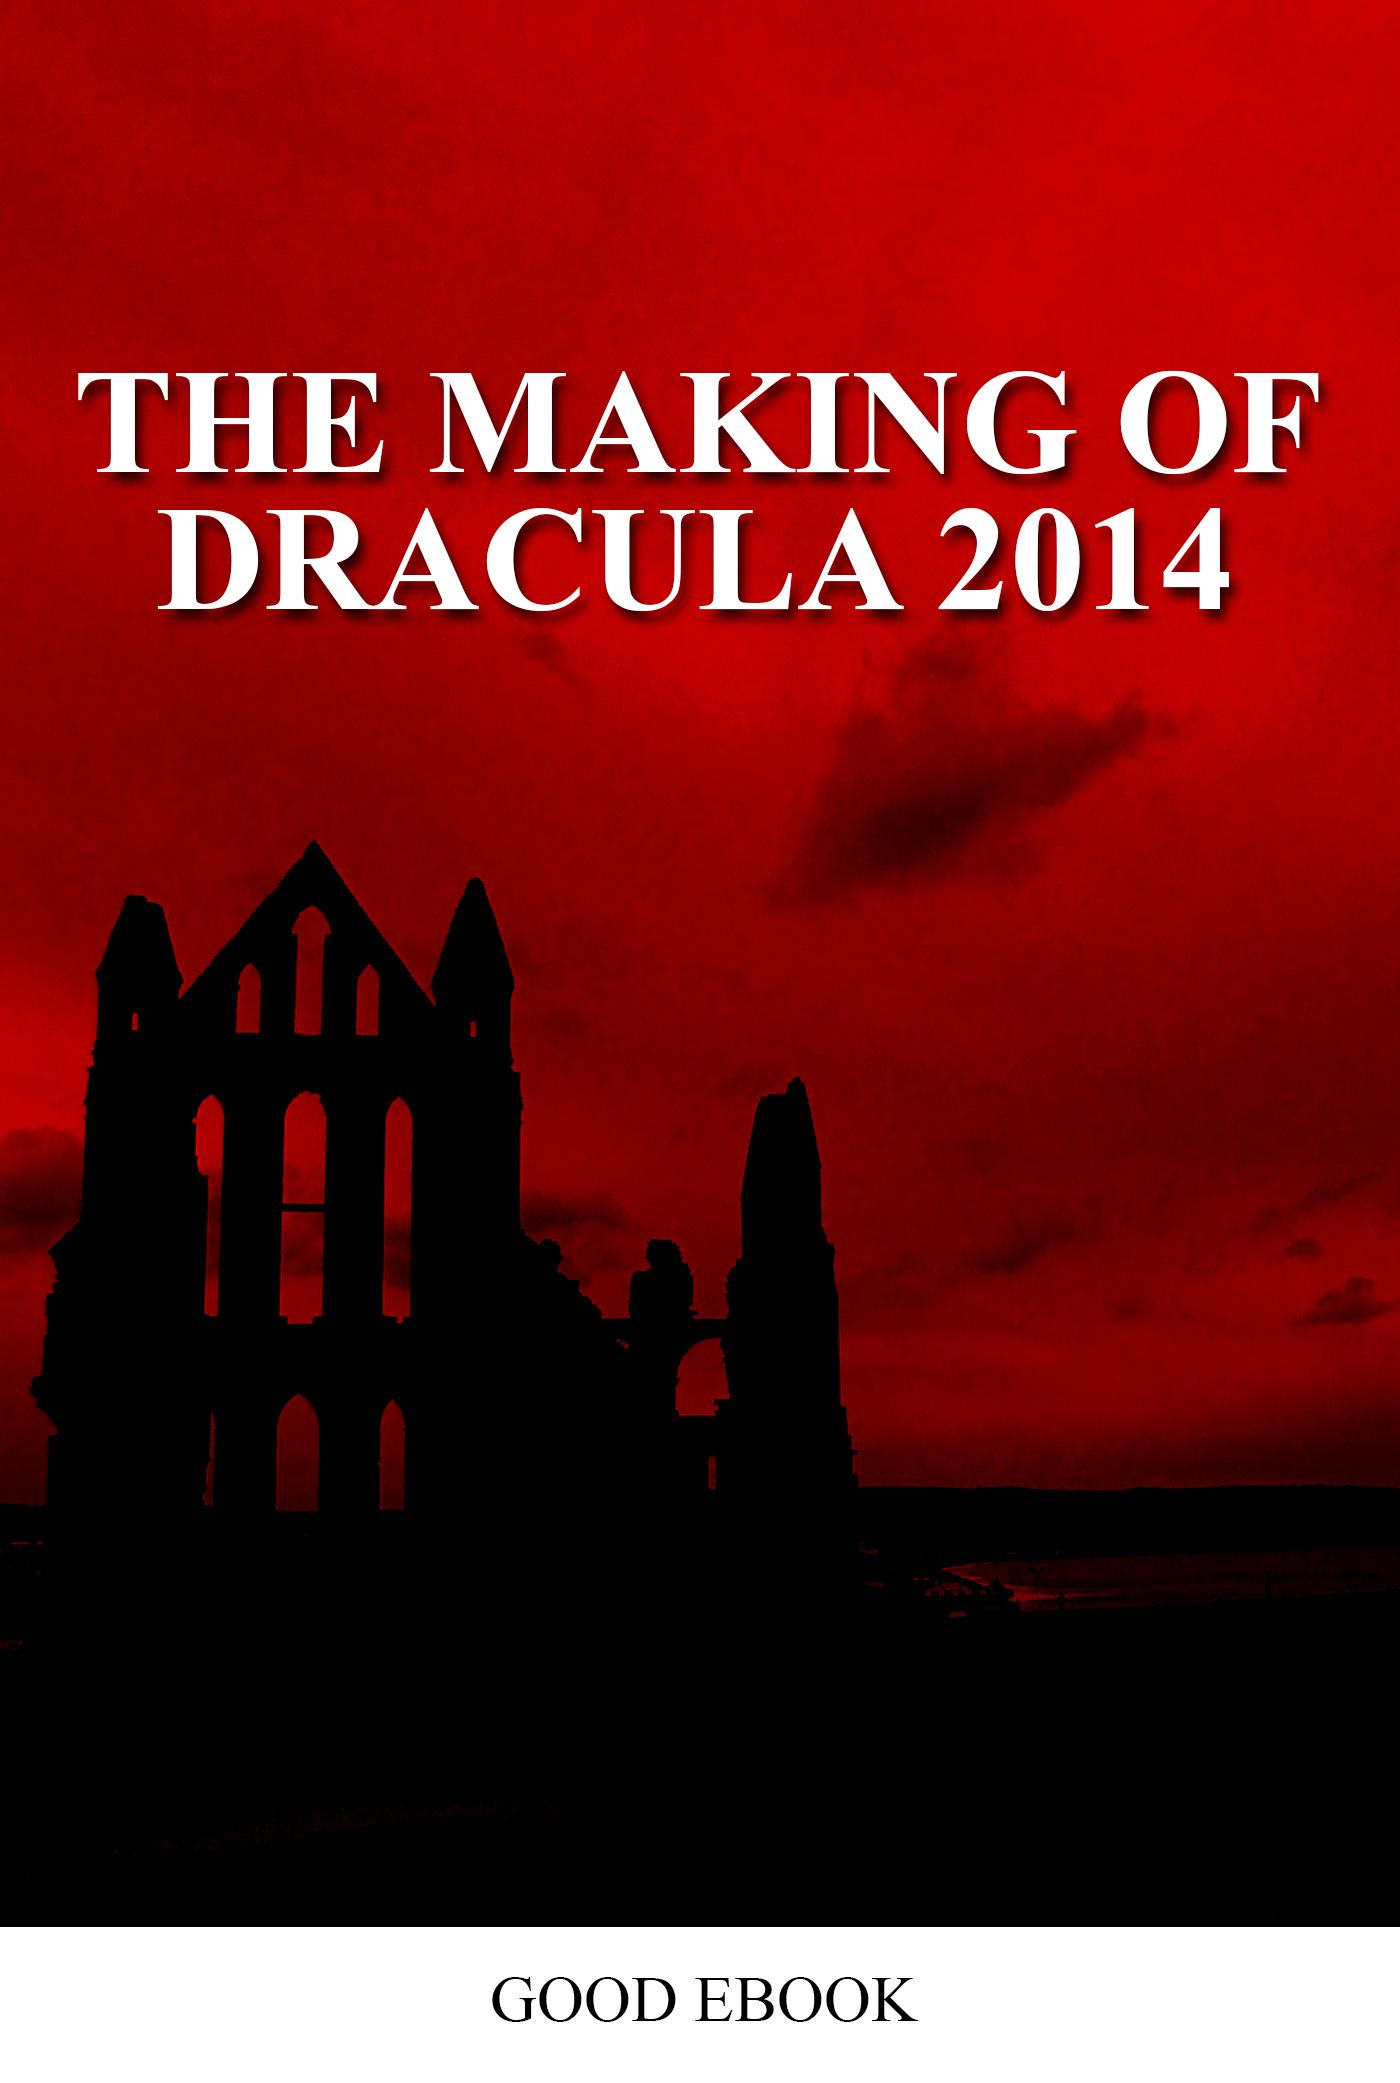 Smashwords – The Making Of Dracula 2014 Film – a book by Good Ebook